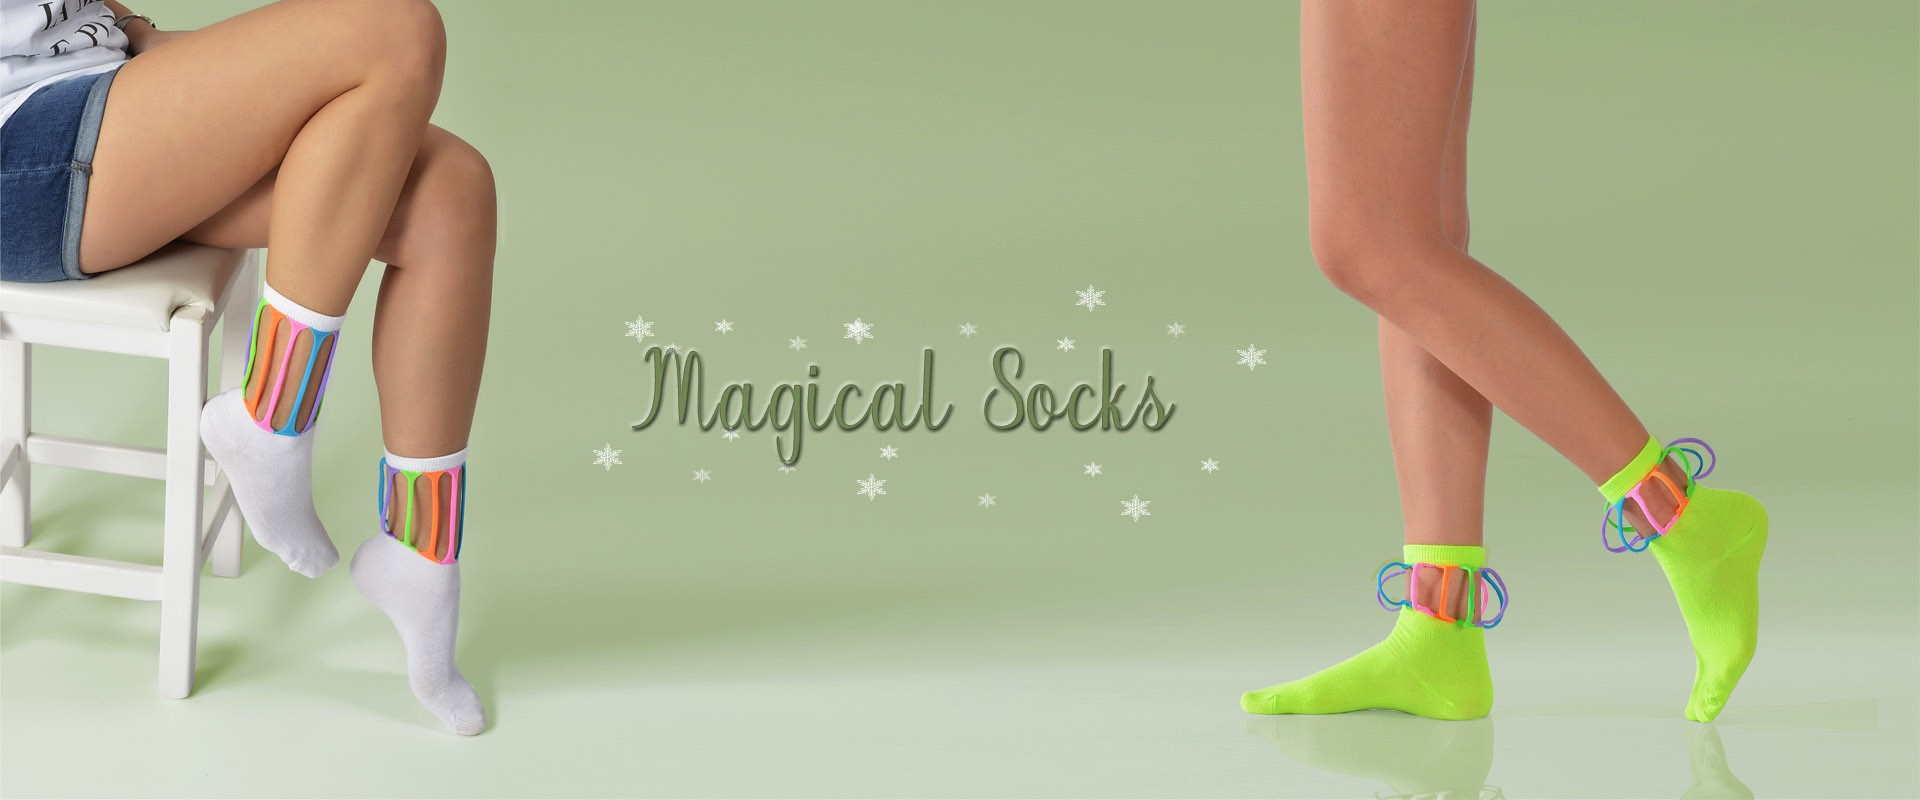 Magical Socks